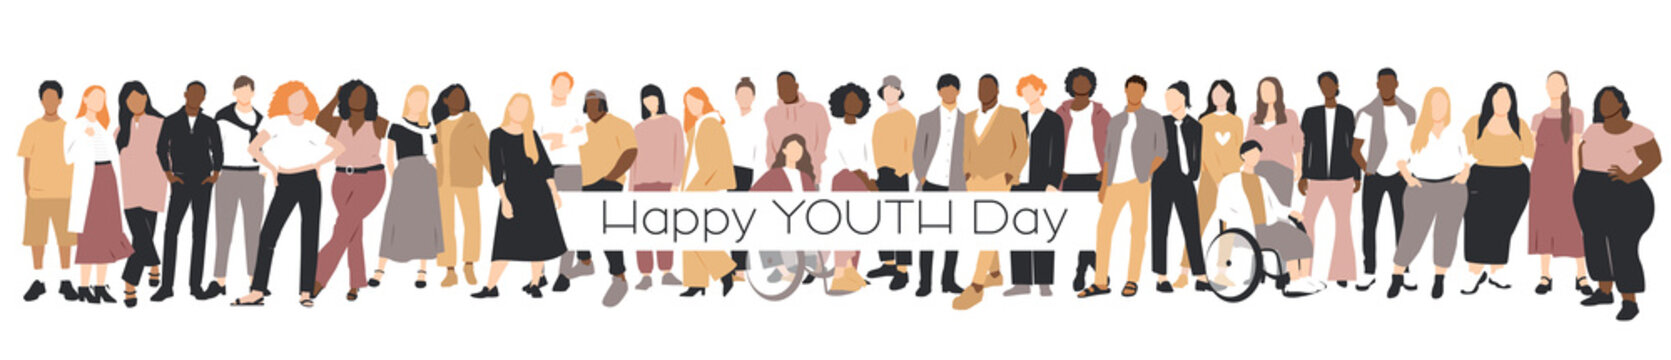 Happy Youth Day card. People of different ethnicities stand side by side together. Flat vector illustration.